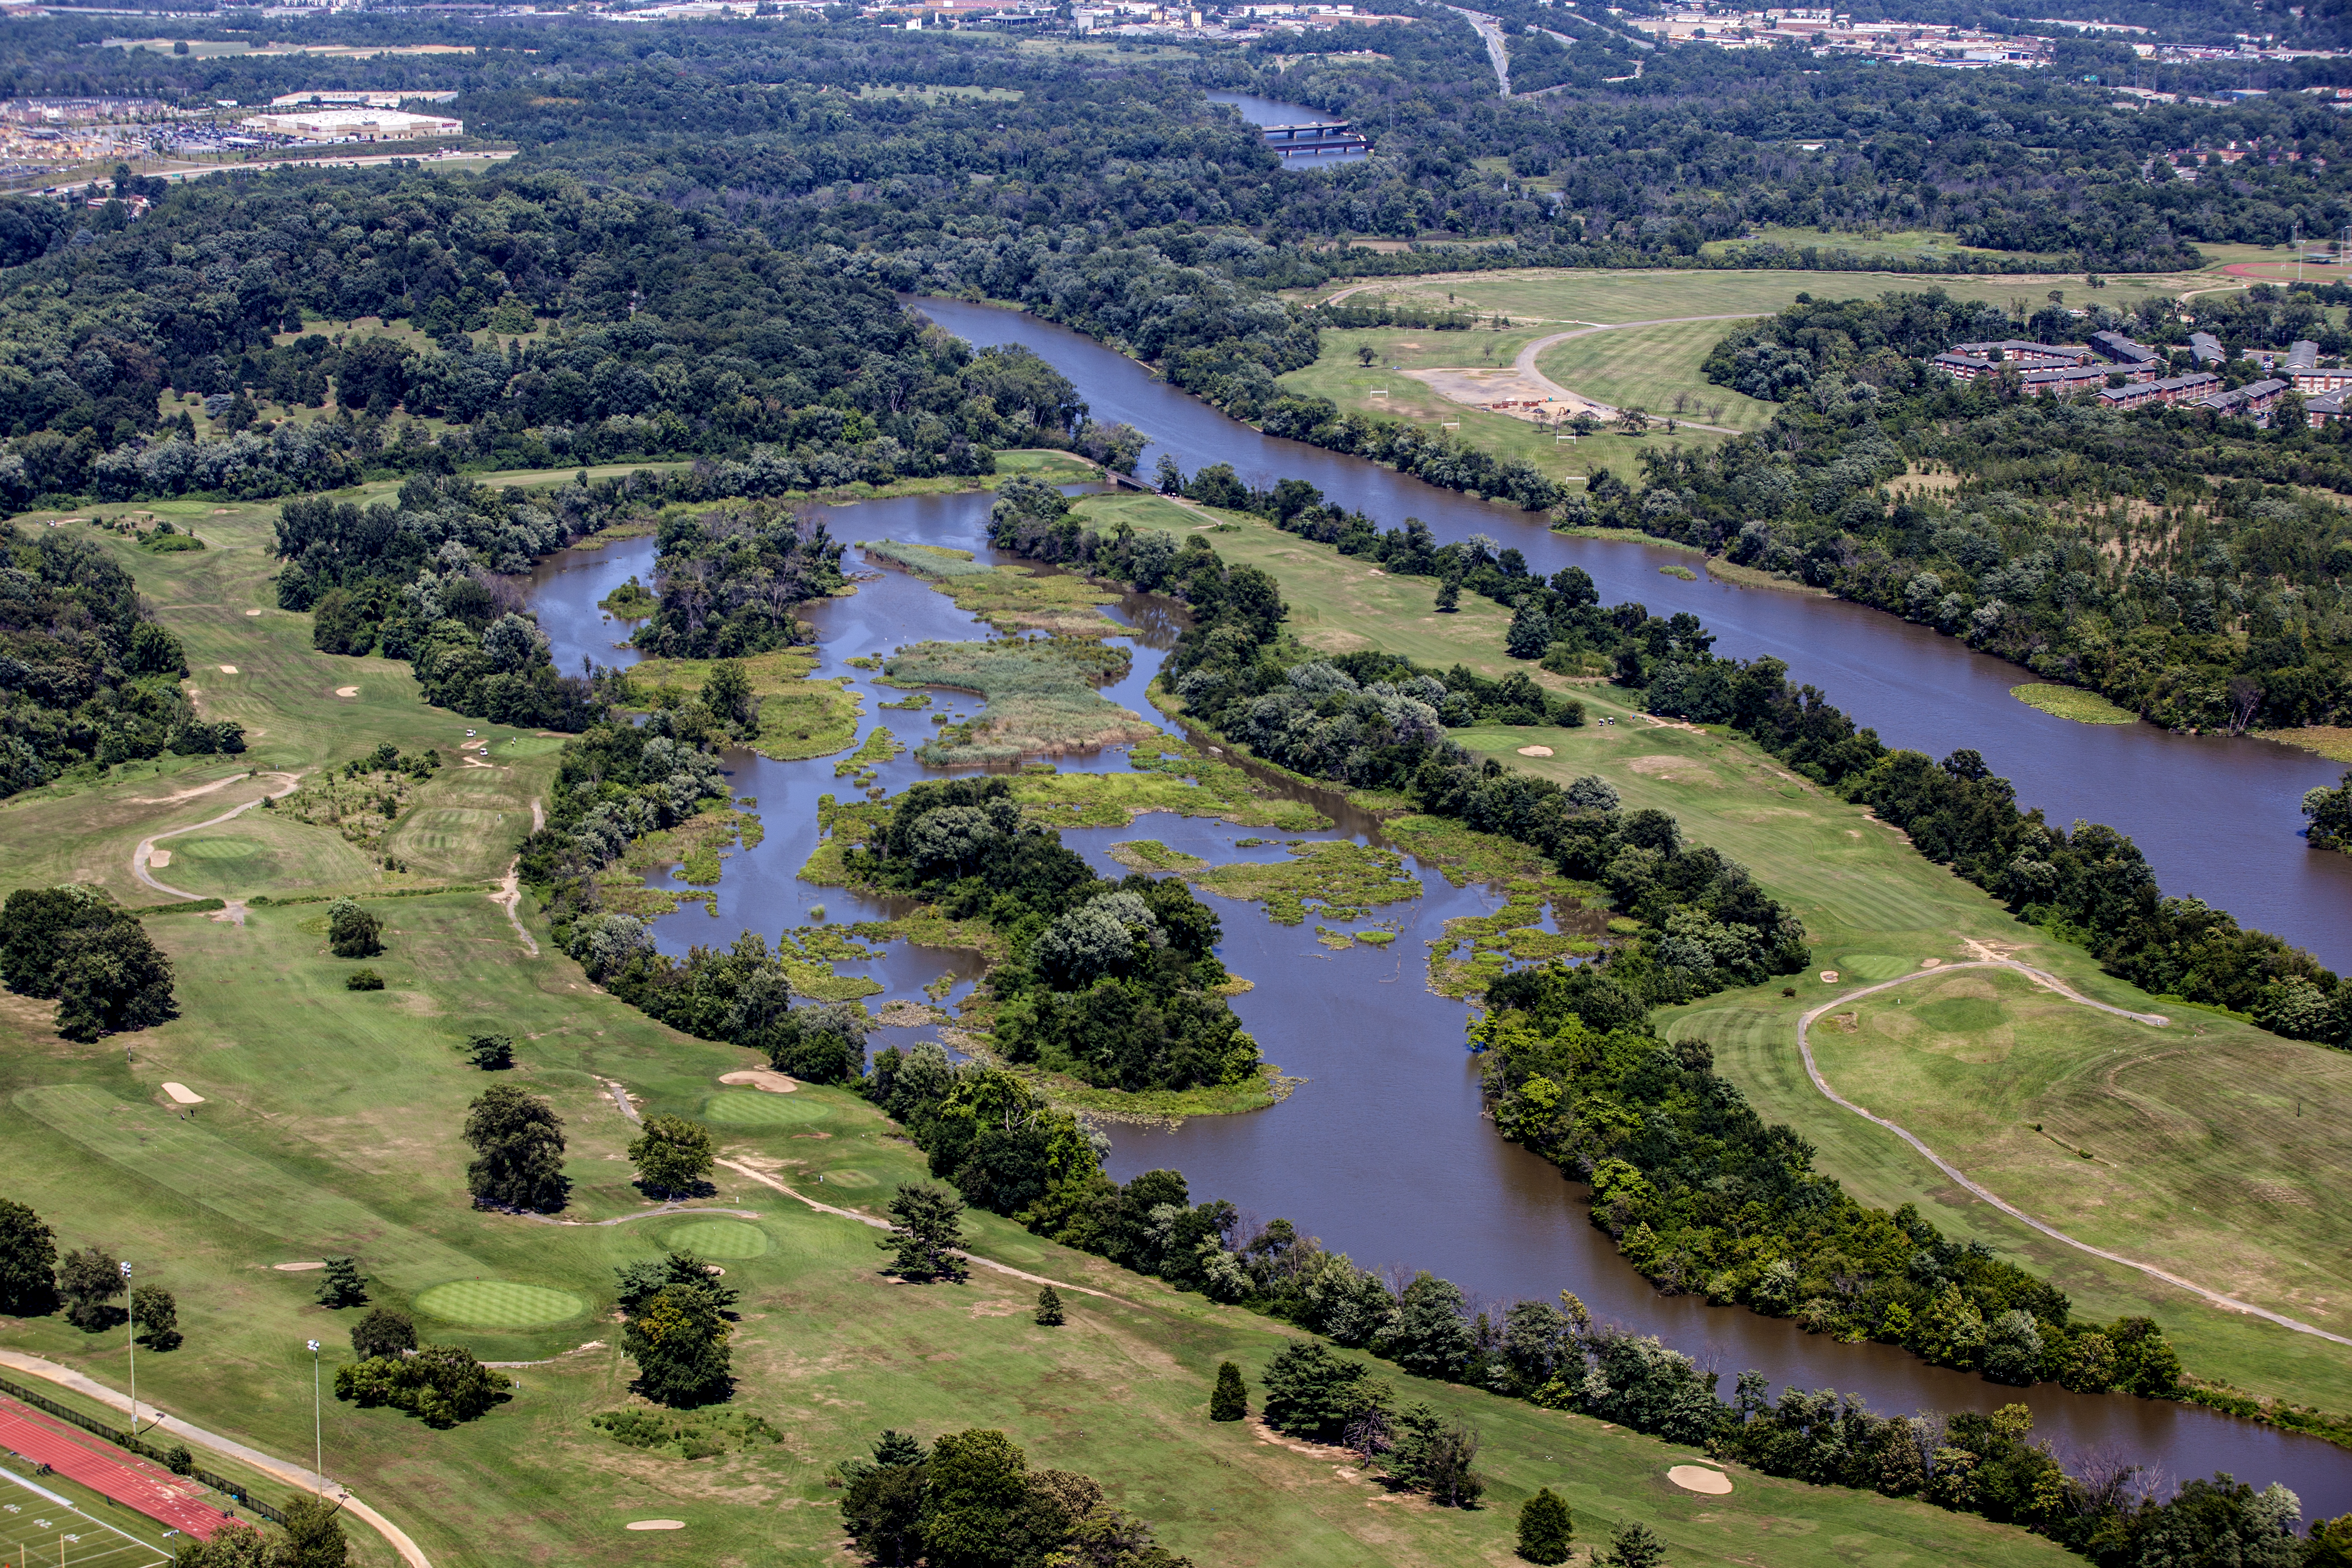 Aerial photo of golf course and river